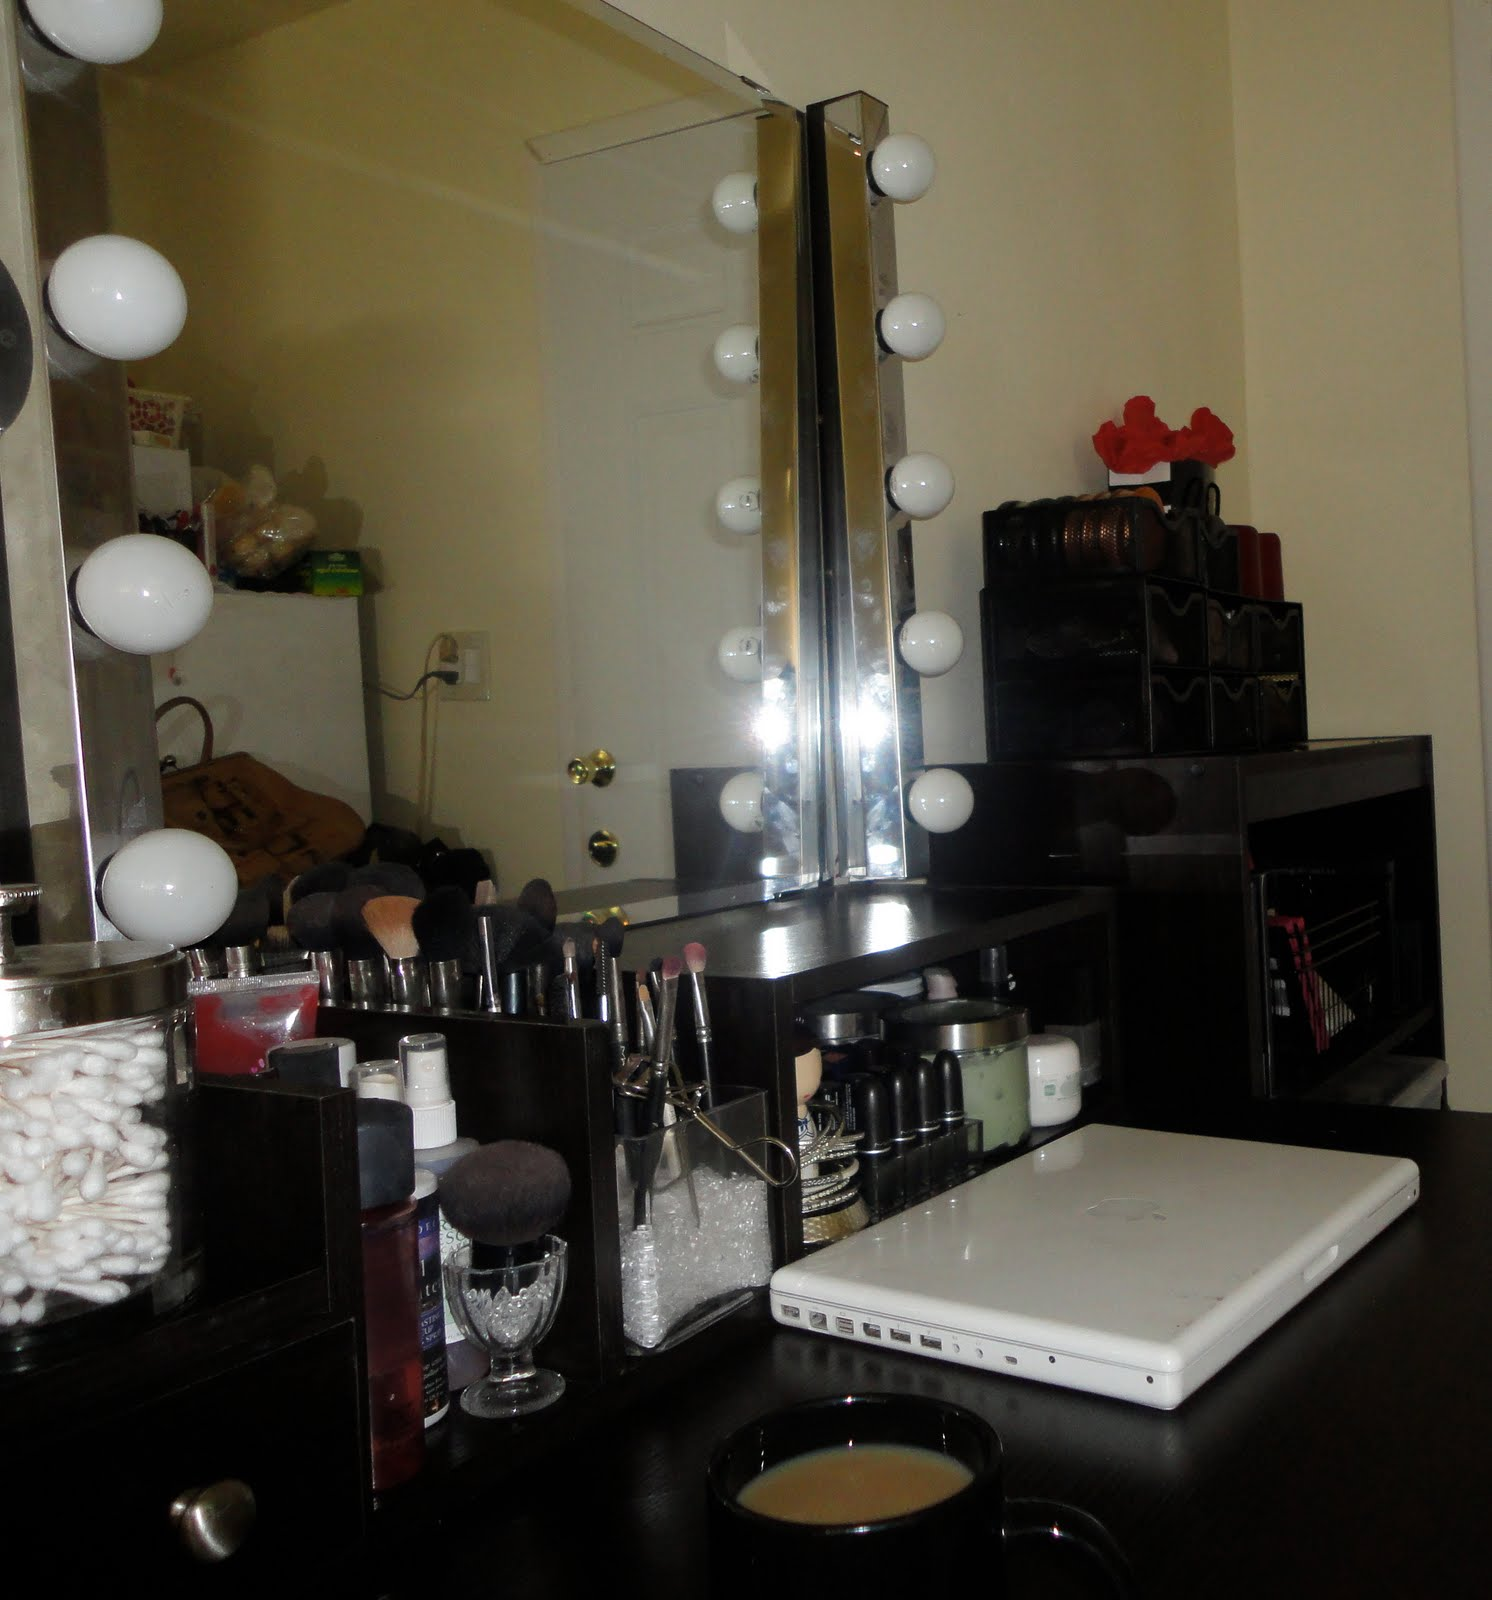 prettythings.: DIY: my new vanity